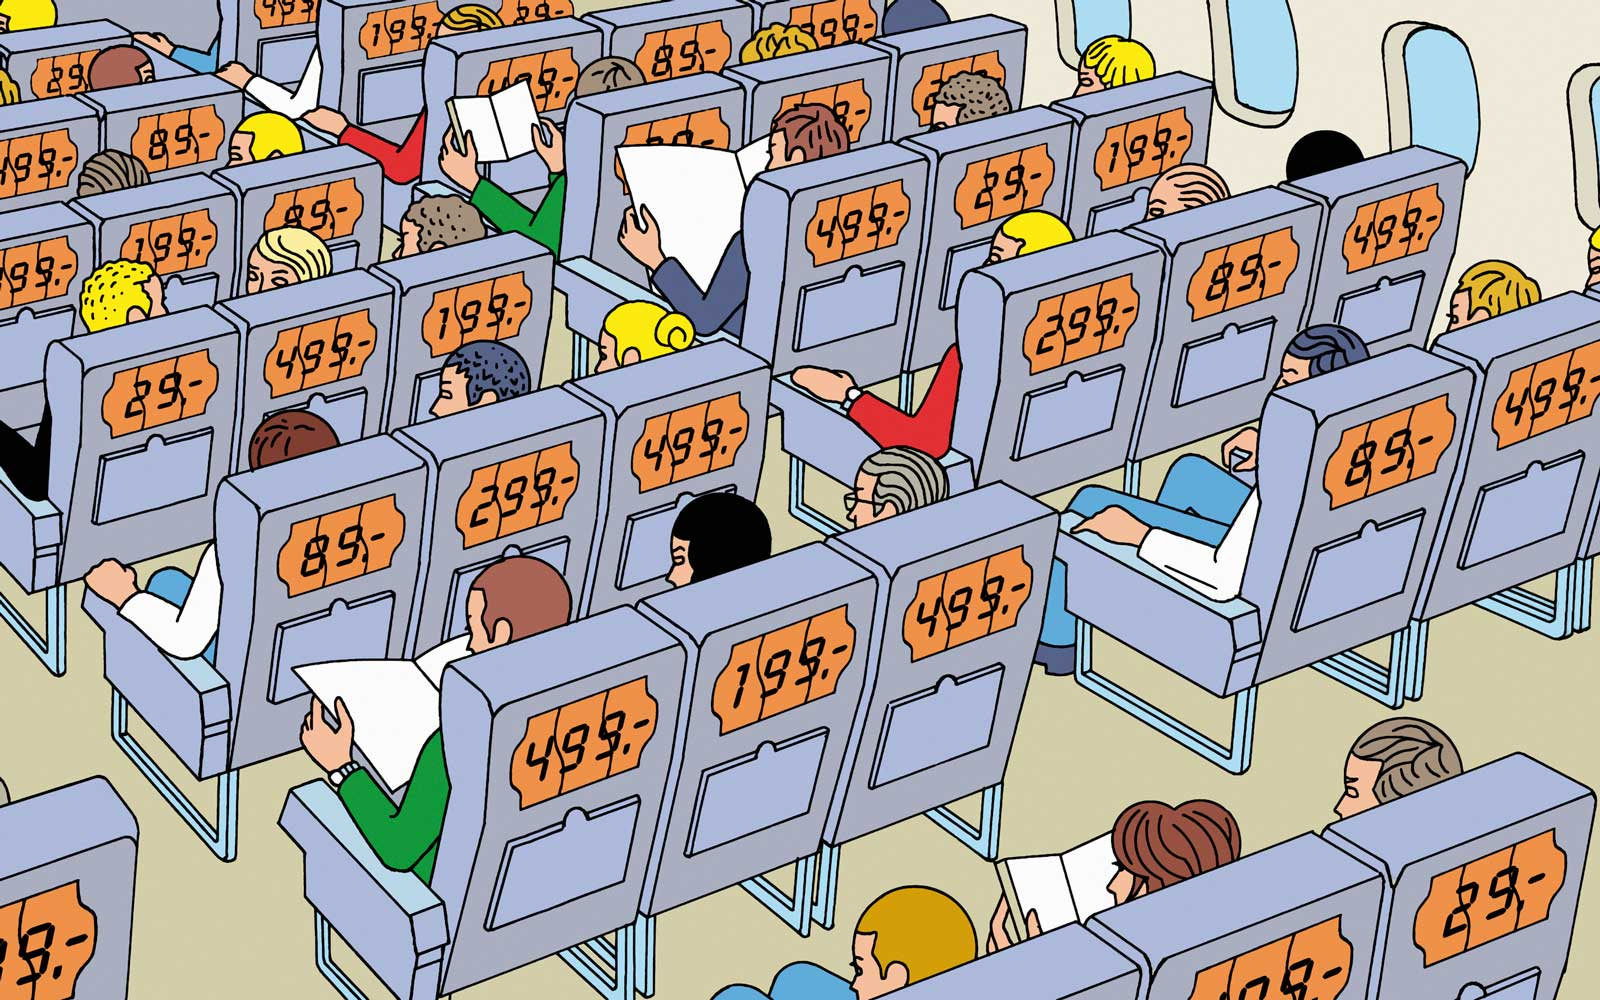 People on plane all paying different fares for seats